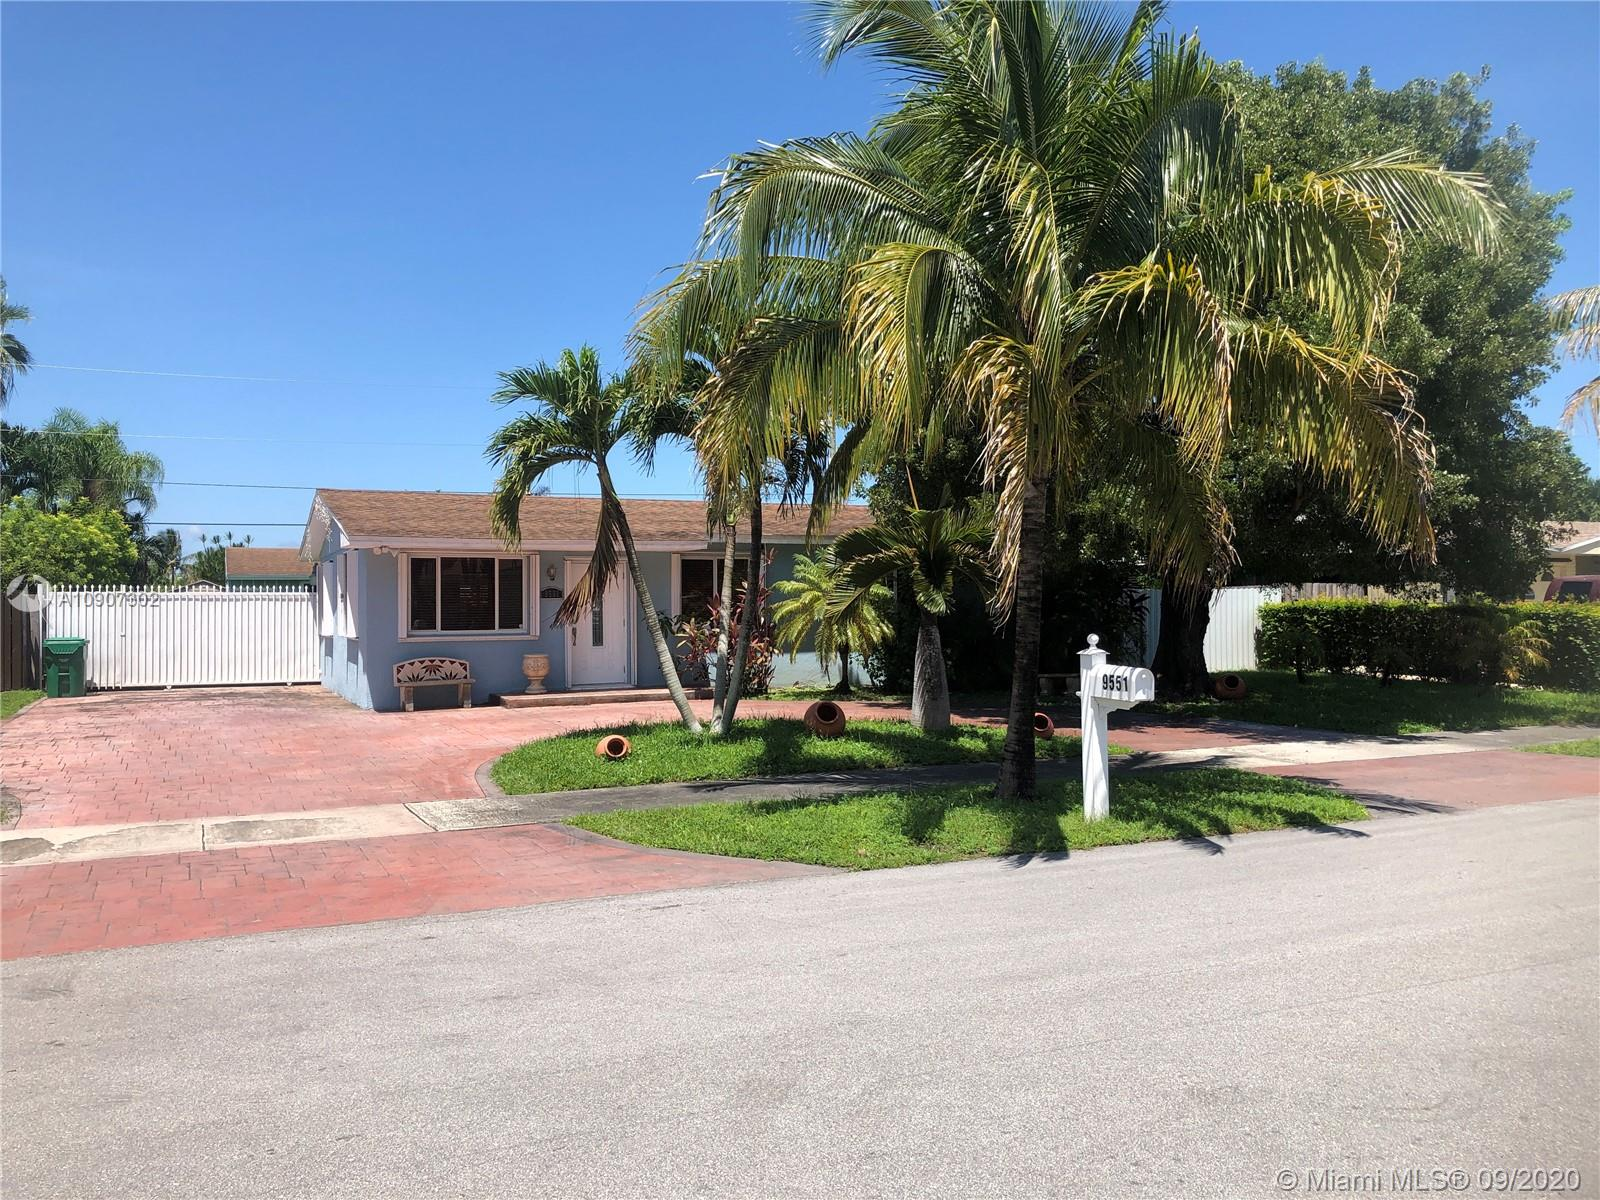 9551 April Rd, Cutler Bay FL 33157